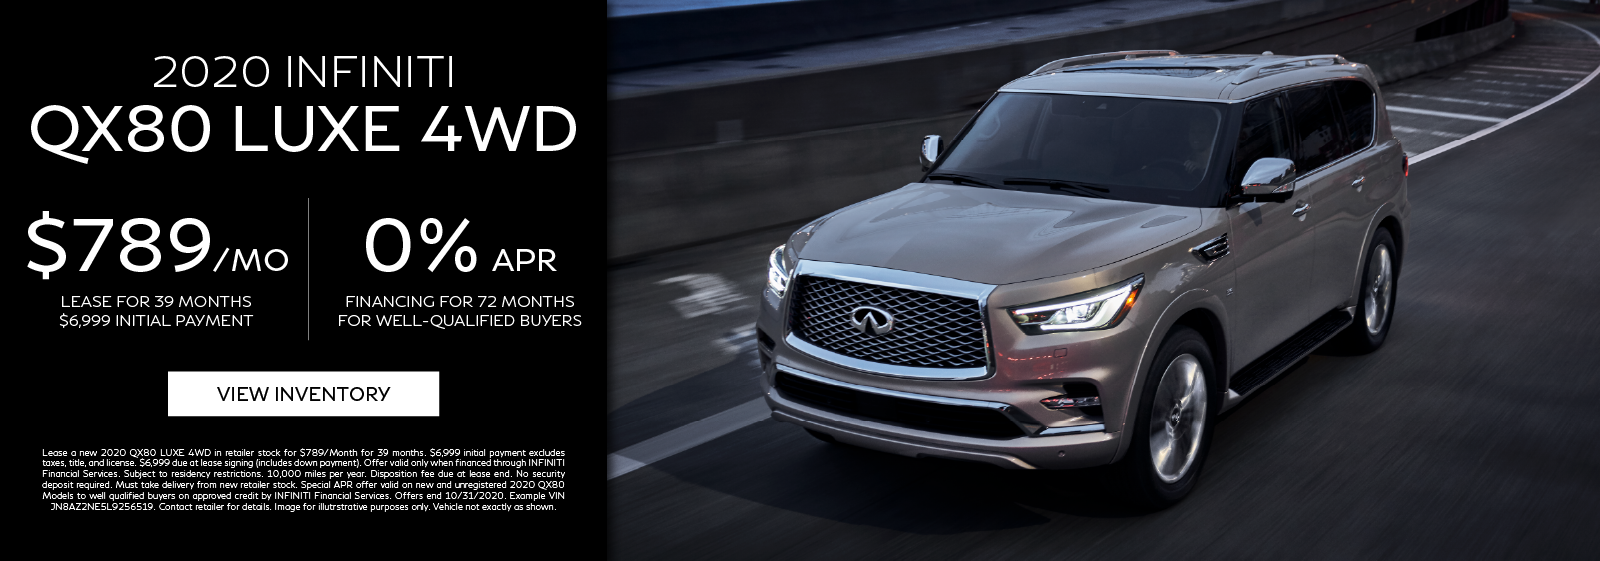 Lease a new 2020 QX80 LUXE 4WD for $789 per month for 39 months or get 0% APR for 72 months. Click to view inventory.